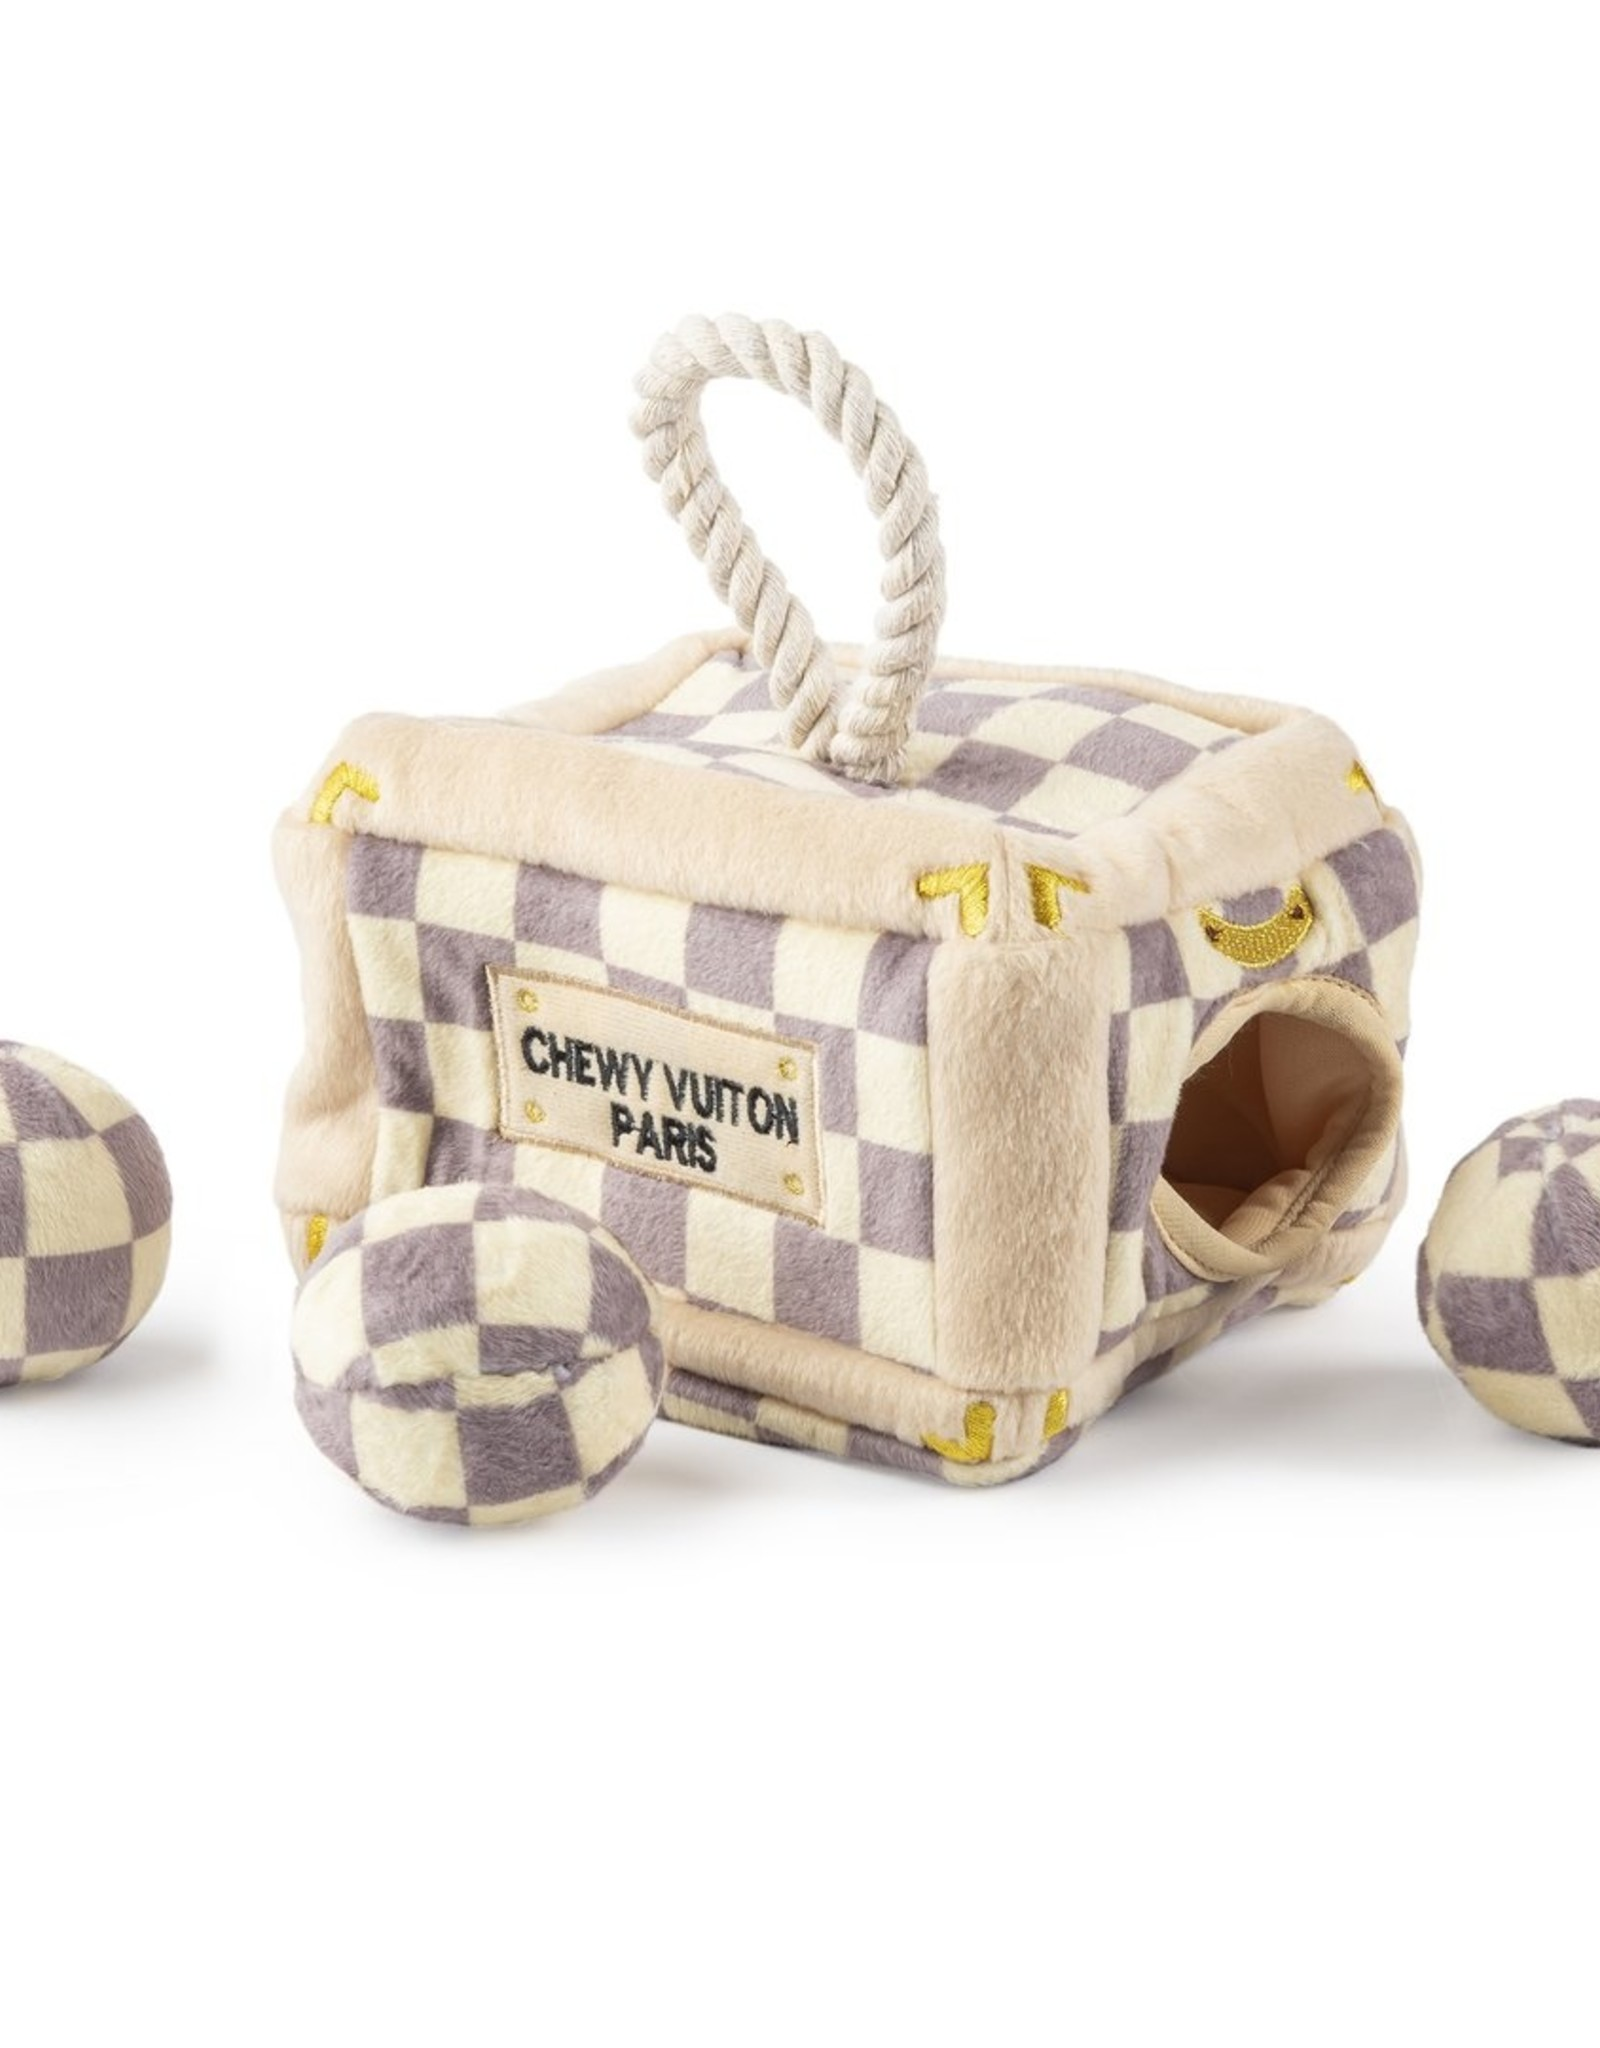 Haute Diggity Dog Interactive - Checkered Chewy Vuitton